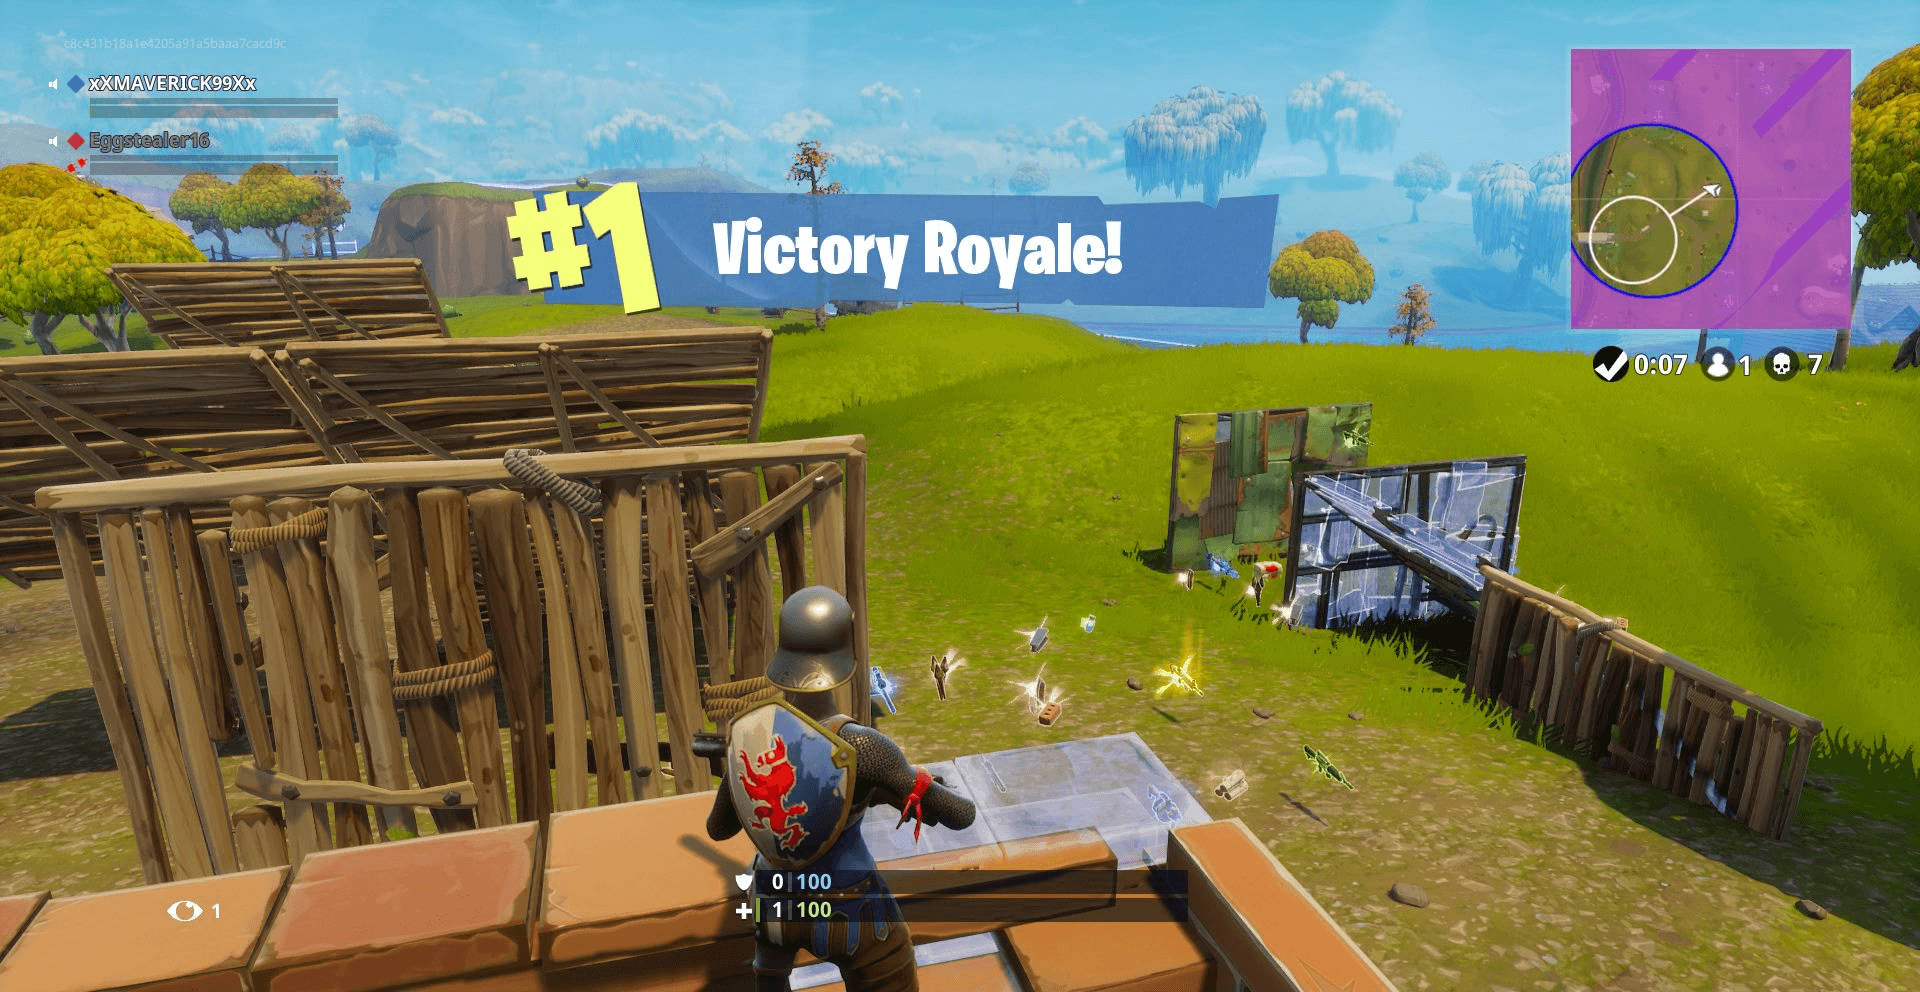 Fortnite Victory Royale!